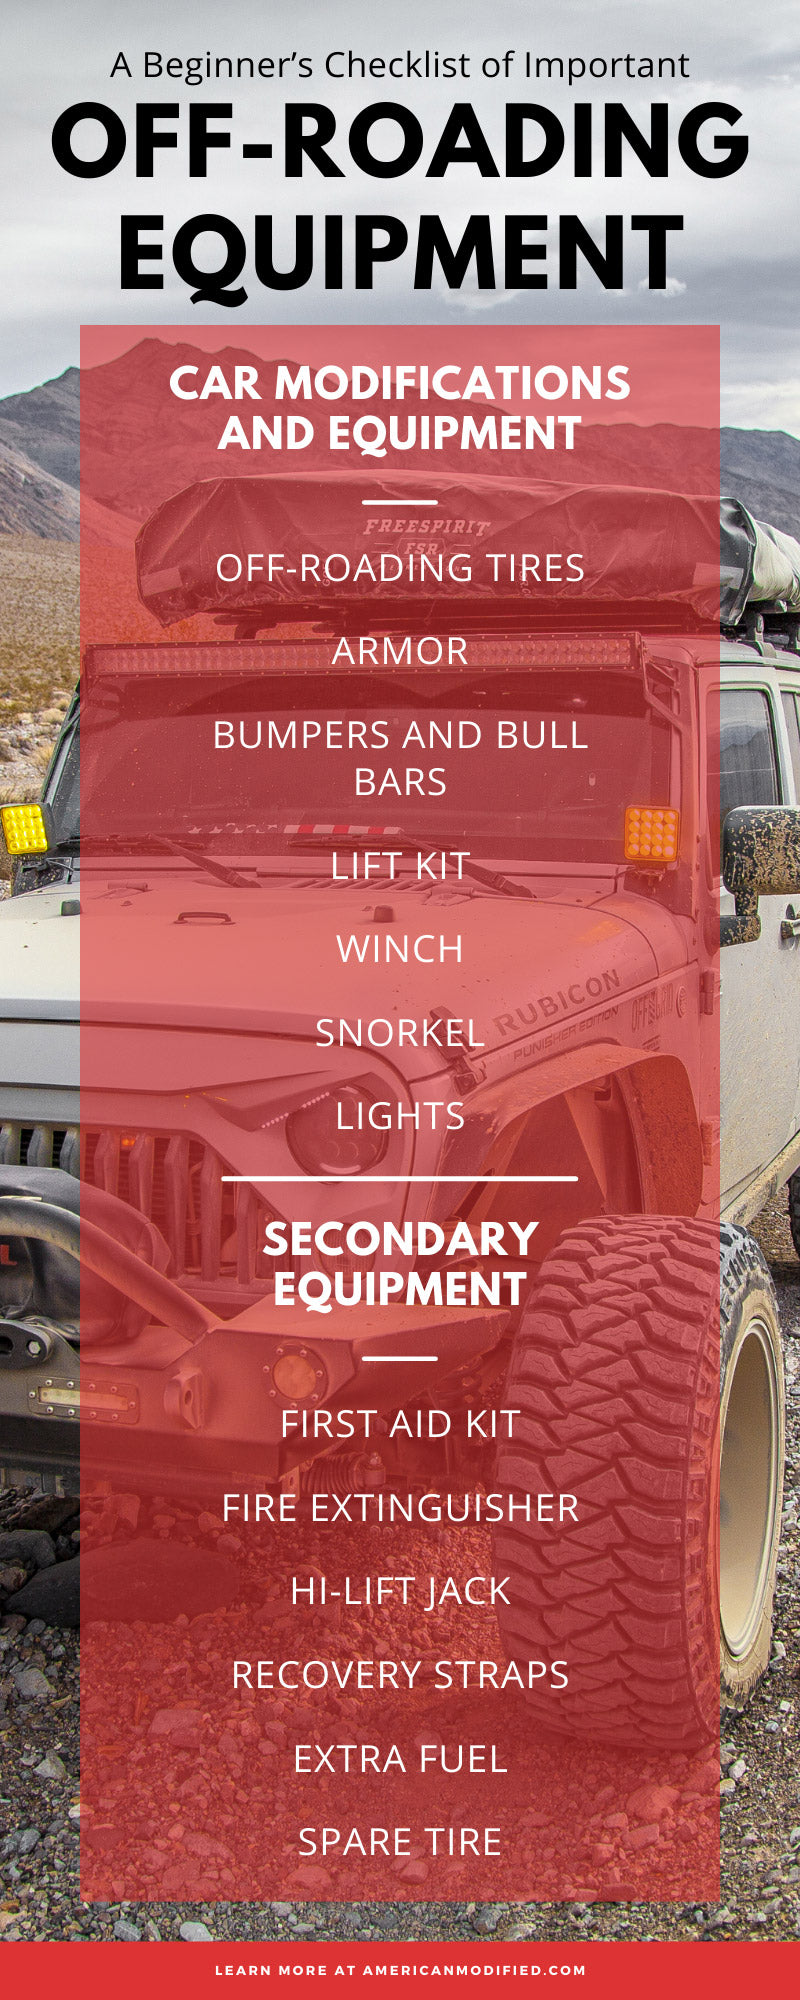 A Beginner's Checklist of Important Off-Roading Equipment